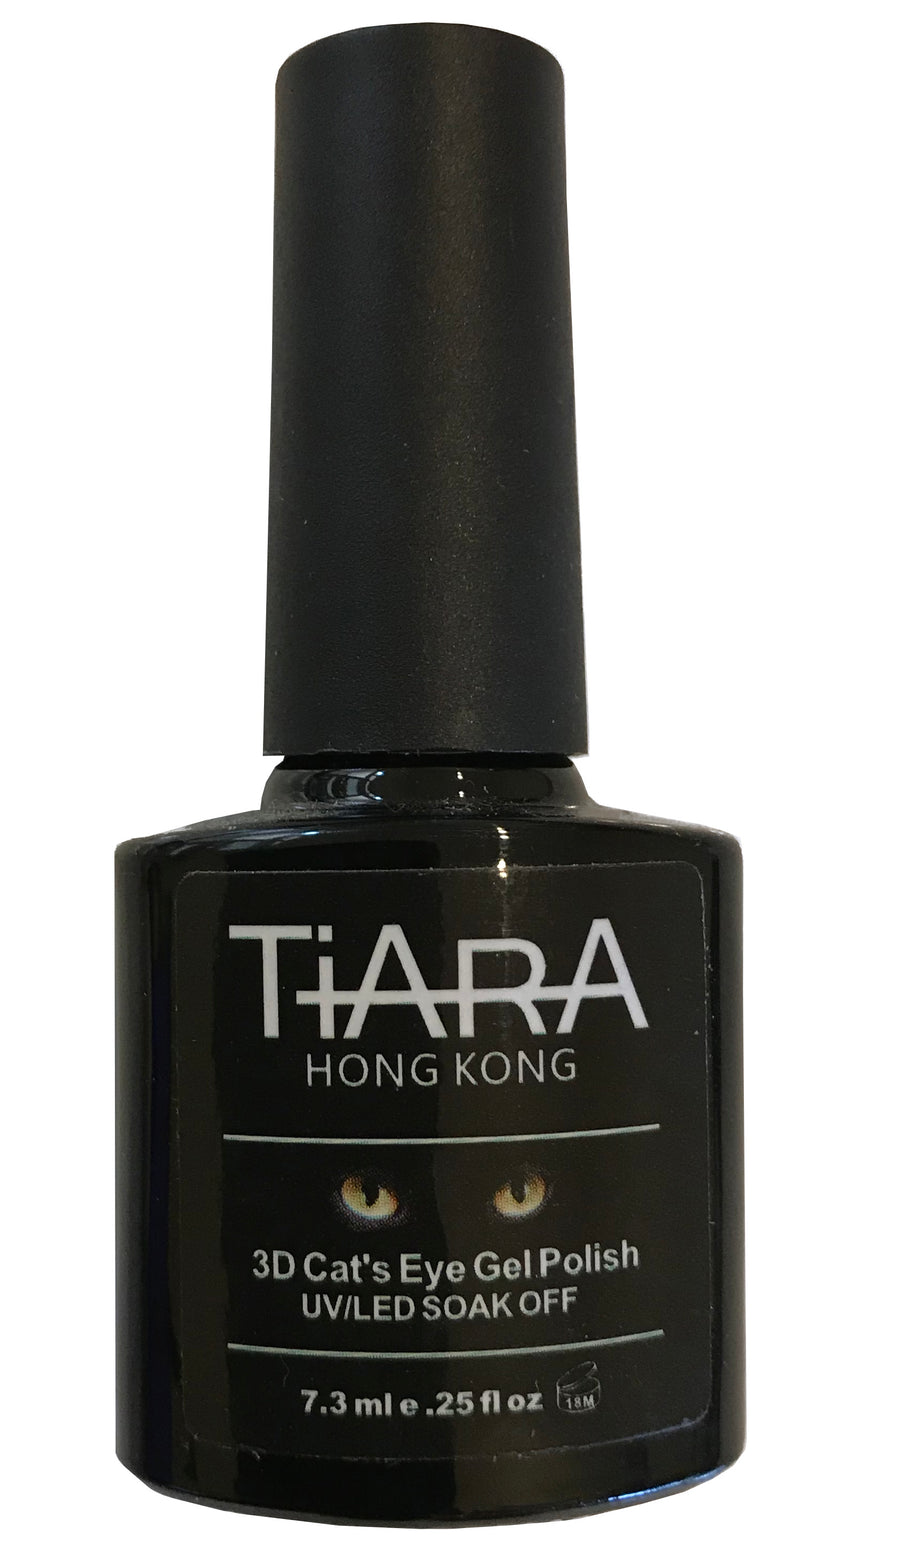 TiARA 3D CAT'S EYE GEL POLISH & MAGIC PLATE - 04